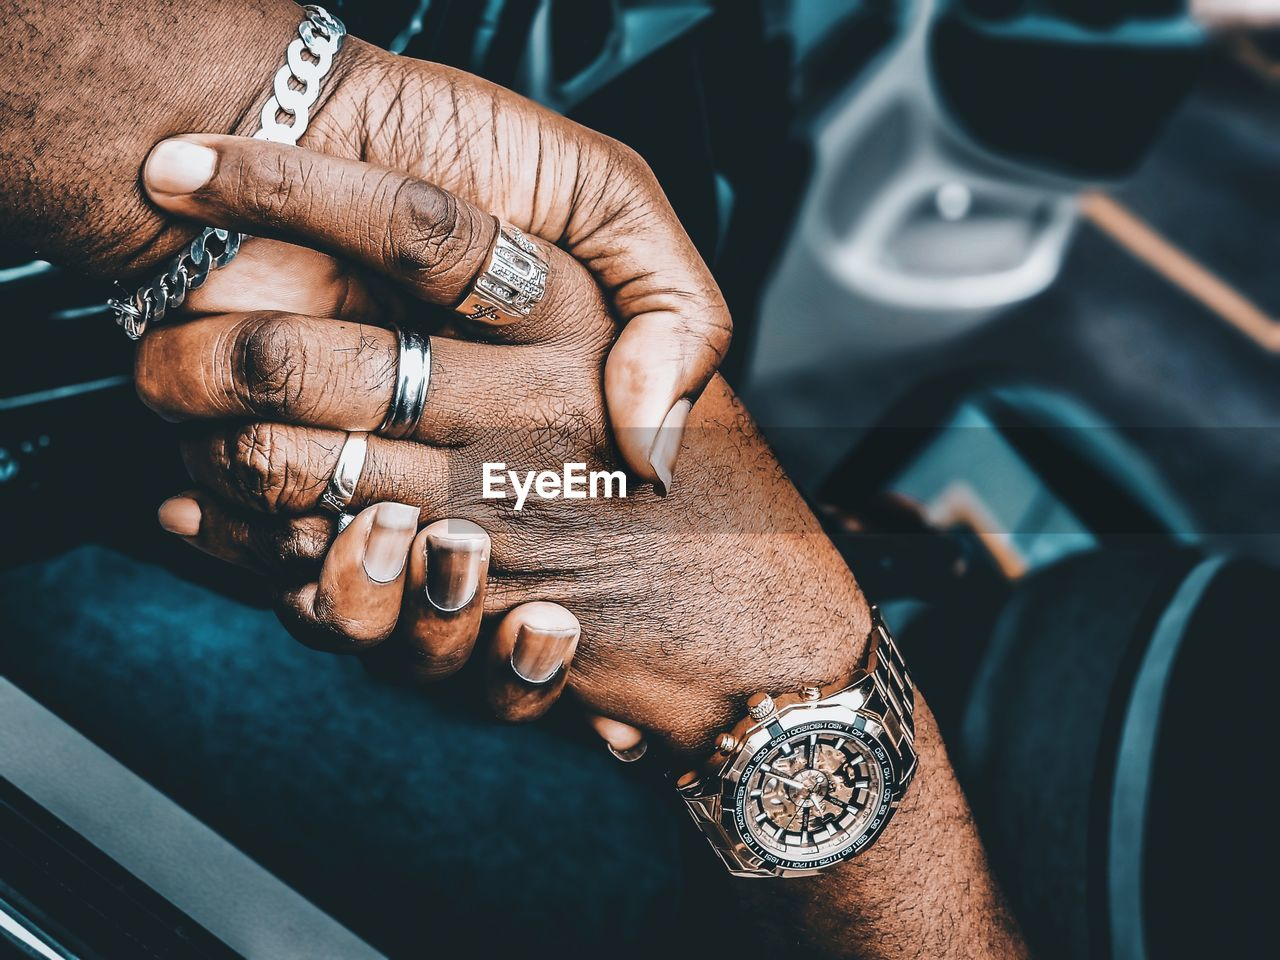 human hand, hand, human body part, real people, one person, tattoo, close-up, adult, time, ring, wristwatch, watch, men, body part, focus on foreground, jewelry, fashion, lifestyles, bracelet, finger, nail